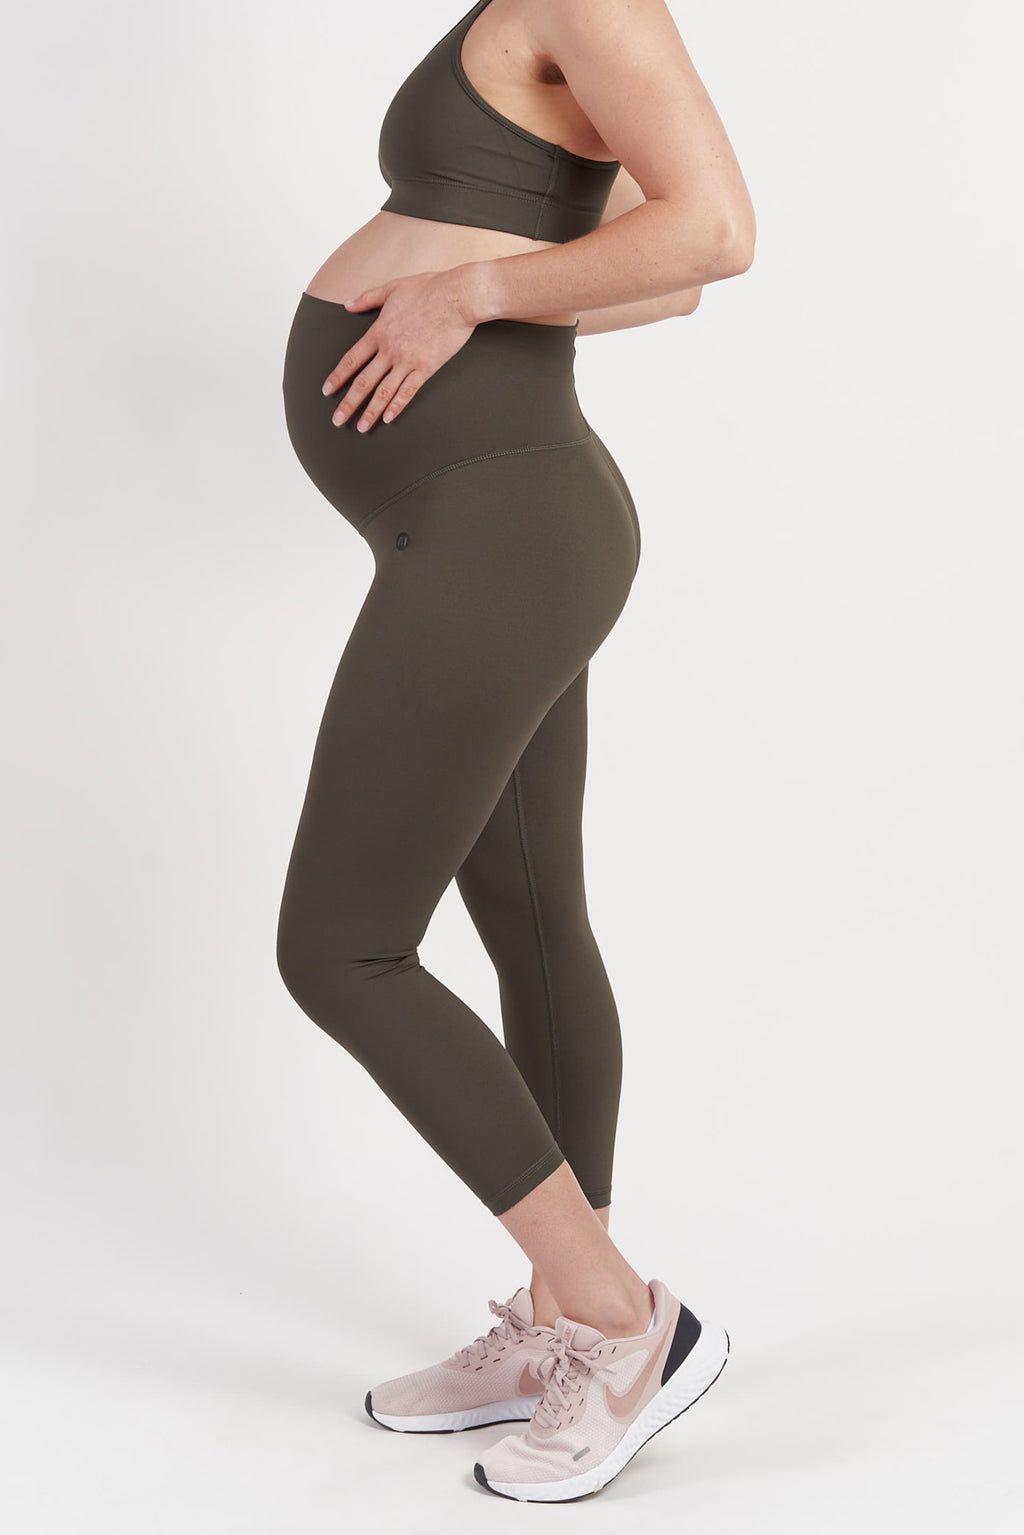 maternity-tights-khaki-small-side